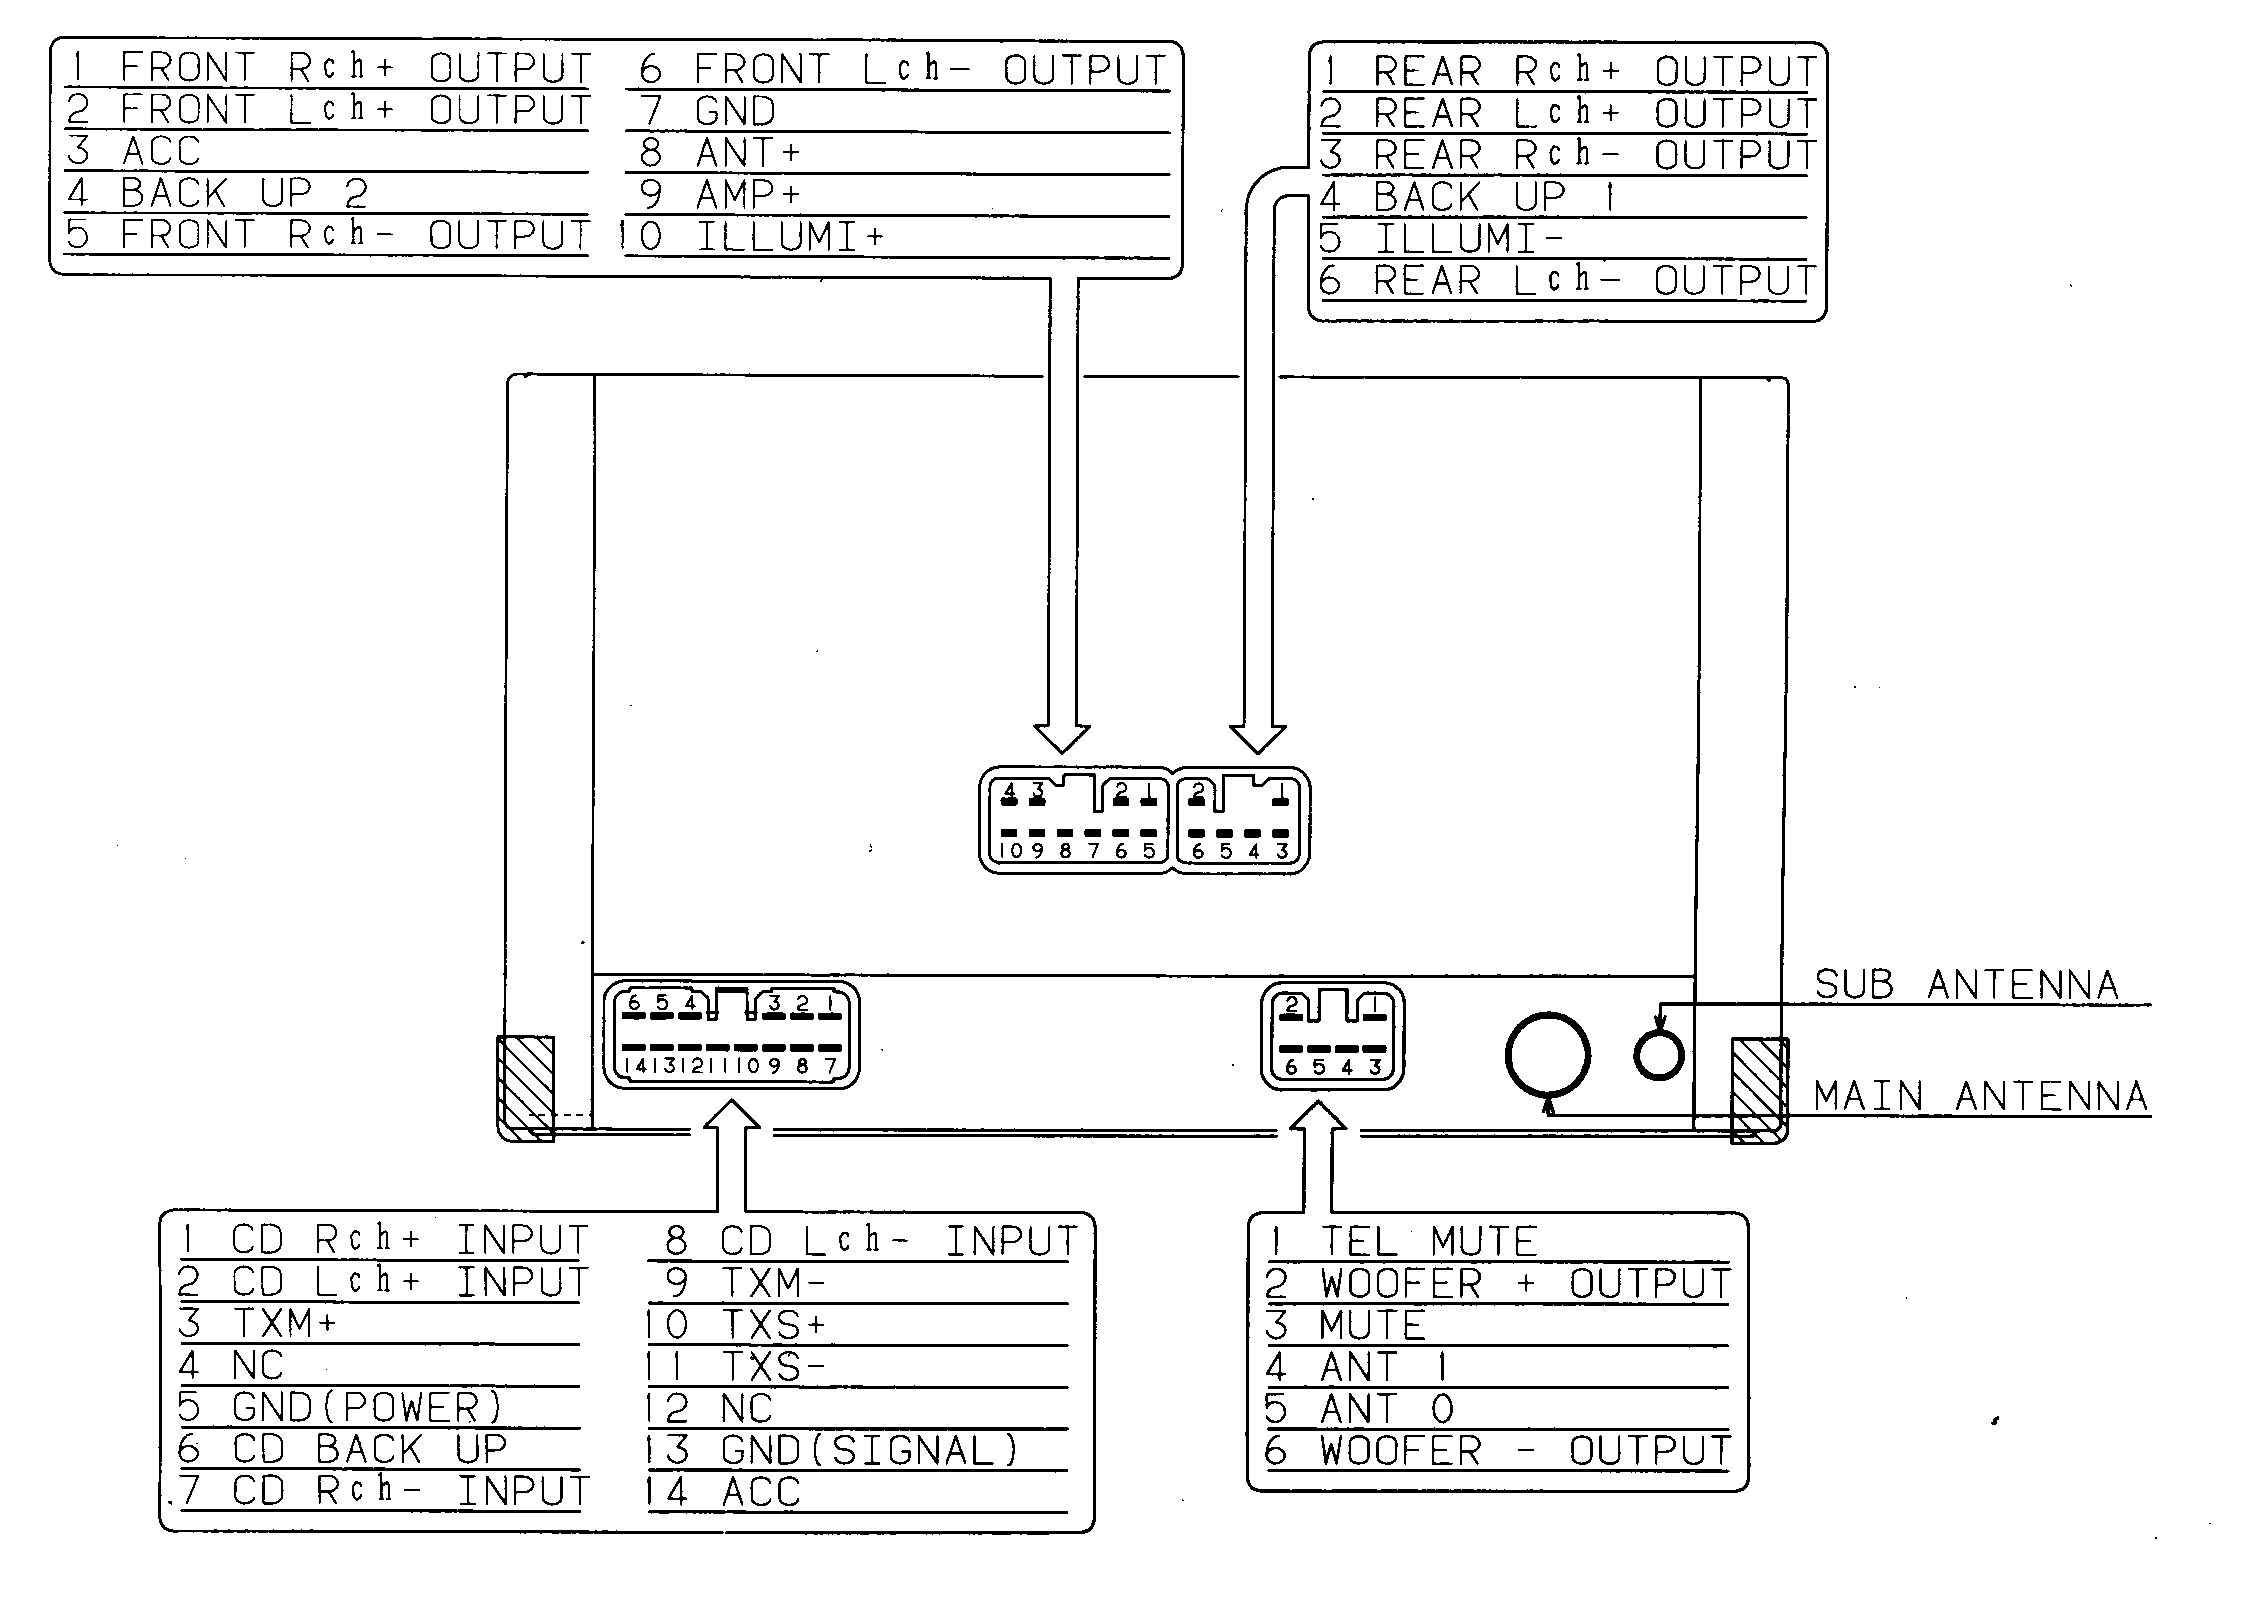 honda bose car stereo wiring diagram